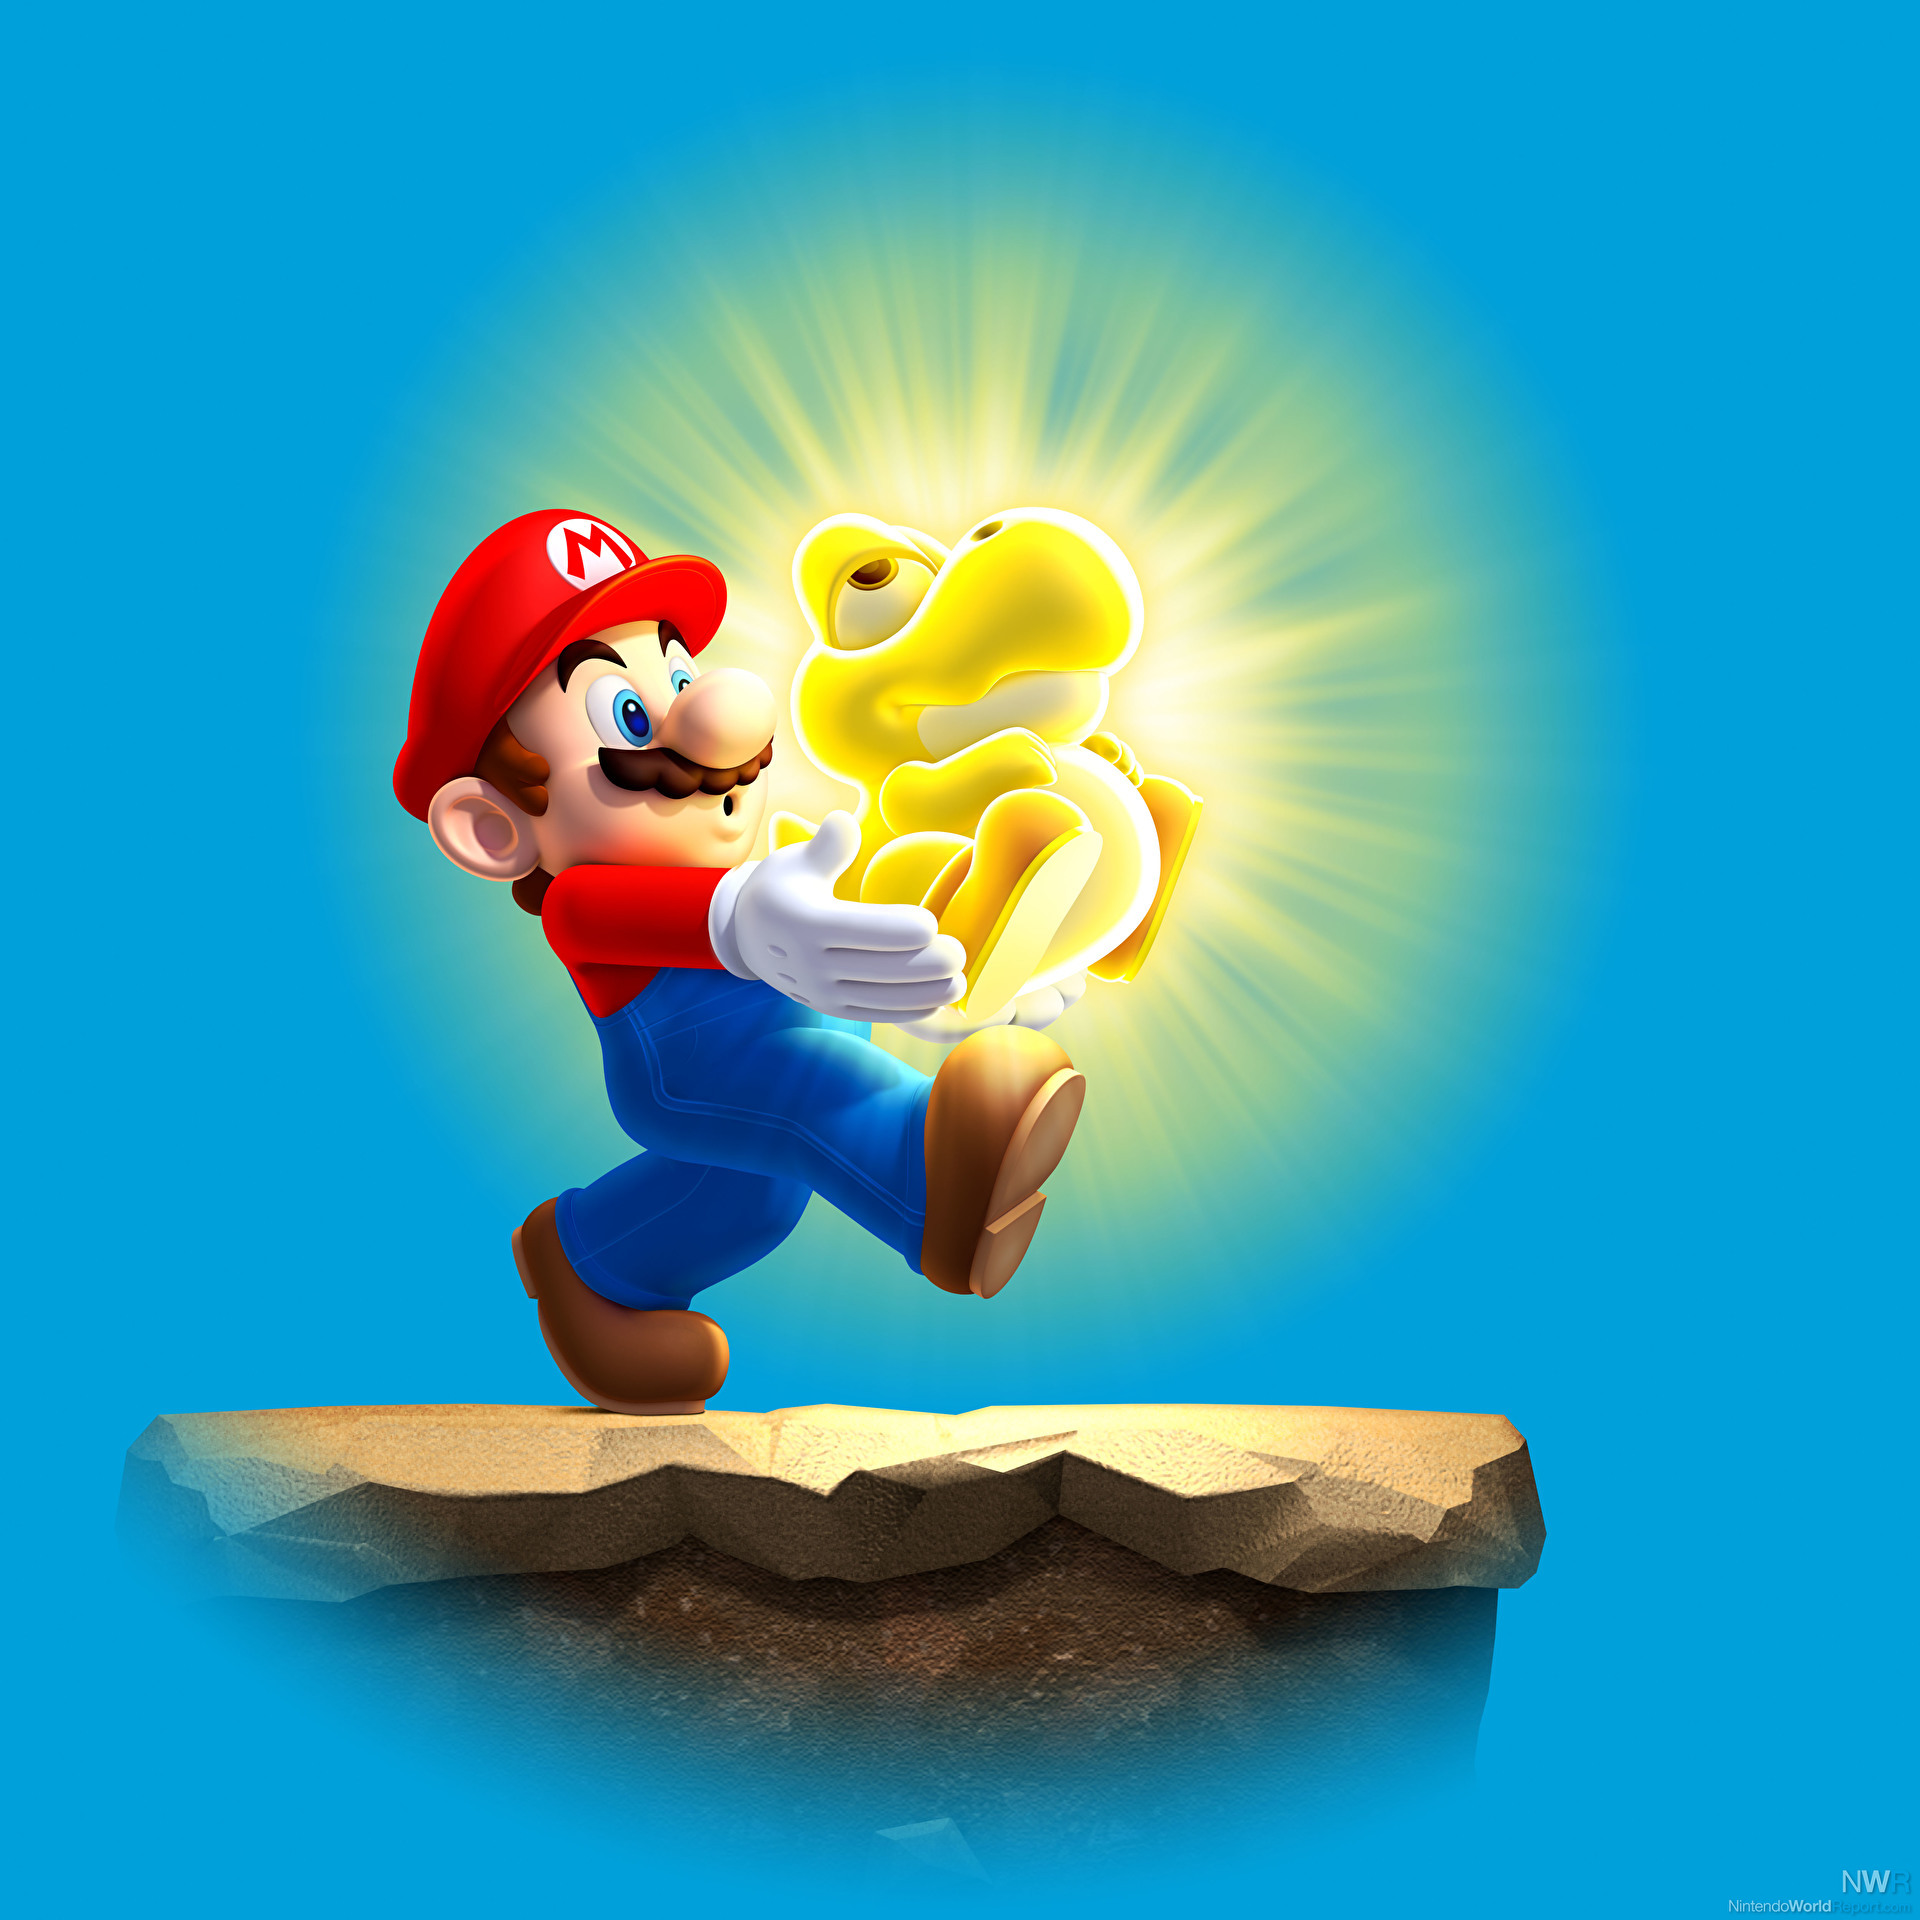 Wii U Pro Controller Support Coming To New Super Mario Bros U